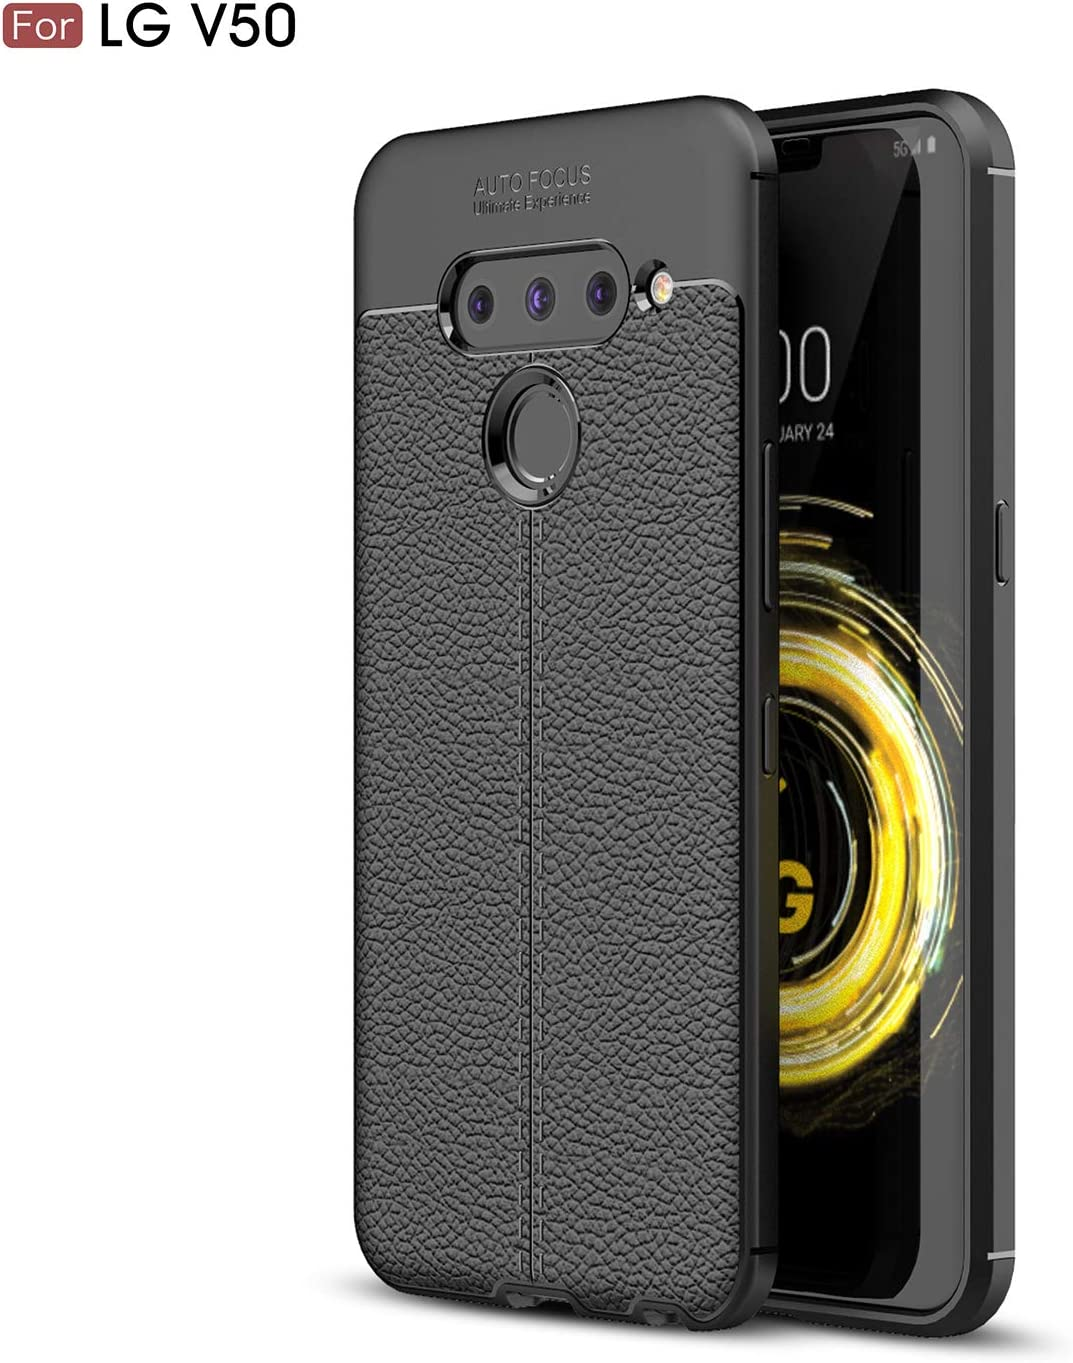 DEVMO Phone Case Compatible with LG V50 TPU Bionic Leather Gel Rubber Full Body Protection Shockproof Cover Case Drop Protection Black